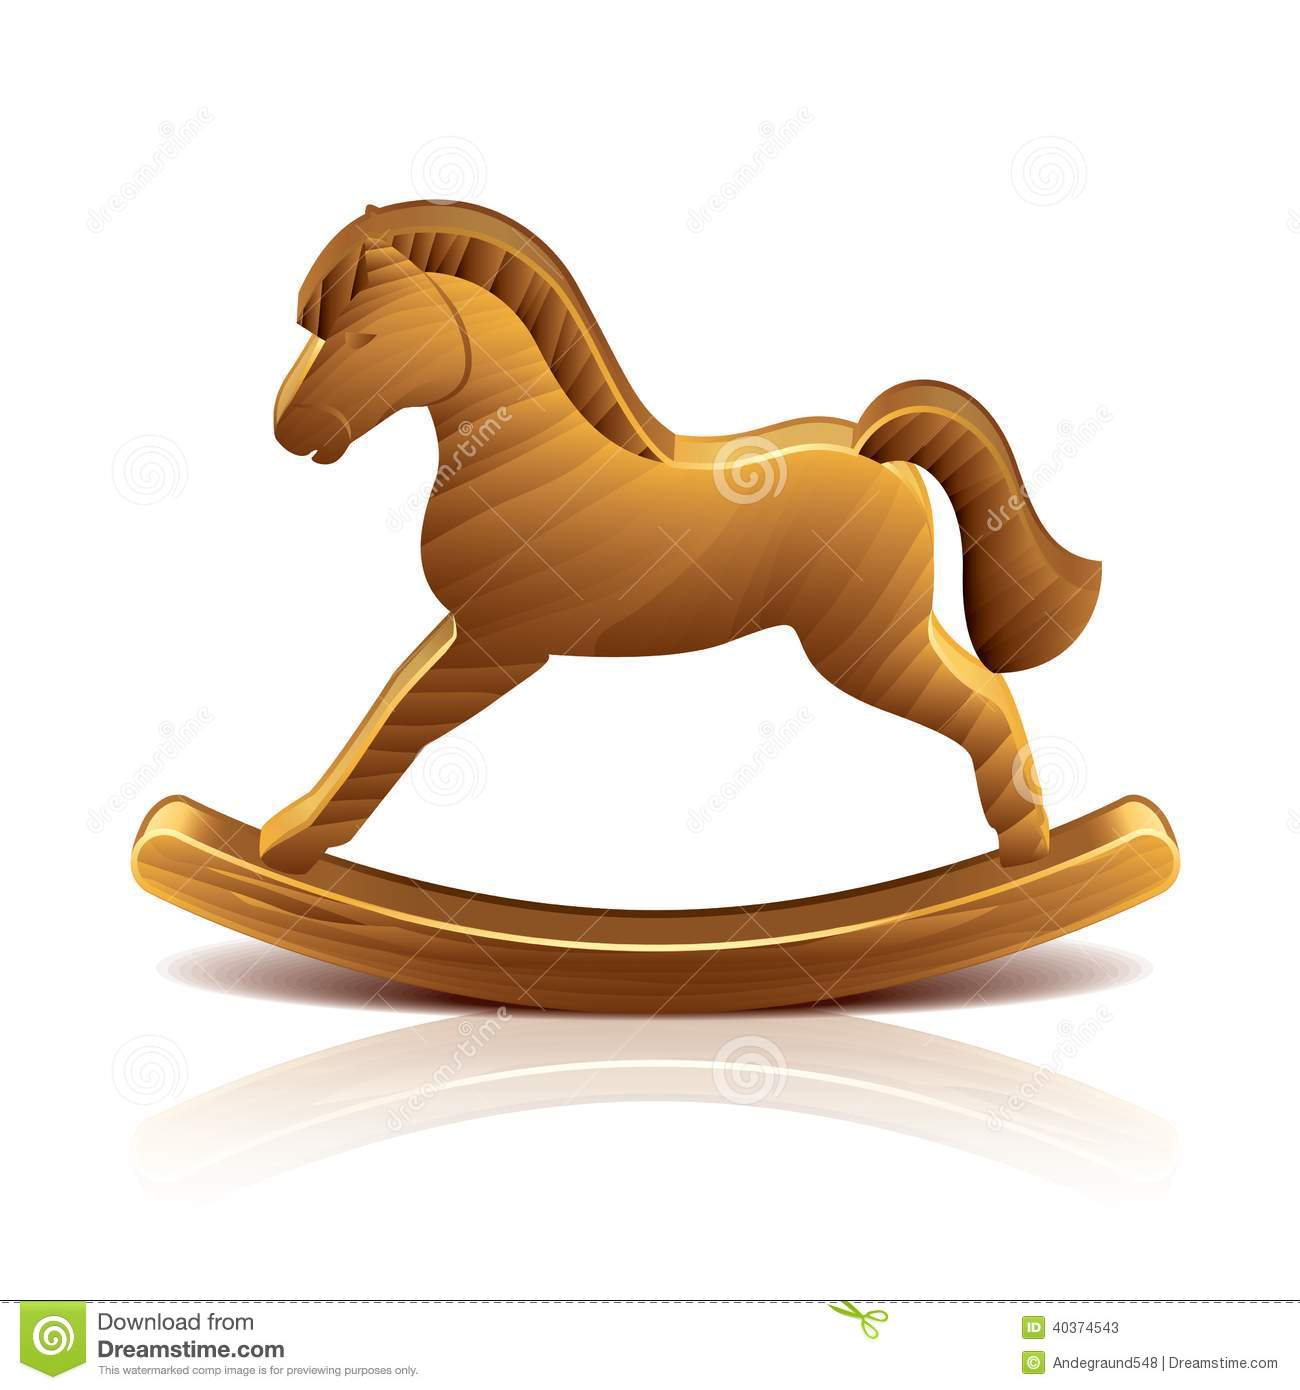 Stock Photos Wooden Rocking Horse Vector Illustration White Photo Realistic Image40374543 as well Section7 together with Stock Photo Old Rocking Chair Wooden Porch White Picket Fence Black Photo Sitting Surrounded One Image35017300 as well 63 Garden Fence Ideas Privacy Front Yard as well Familiar Preschool By Igarashi Design Studio. on wooden house architecture design